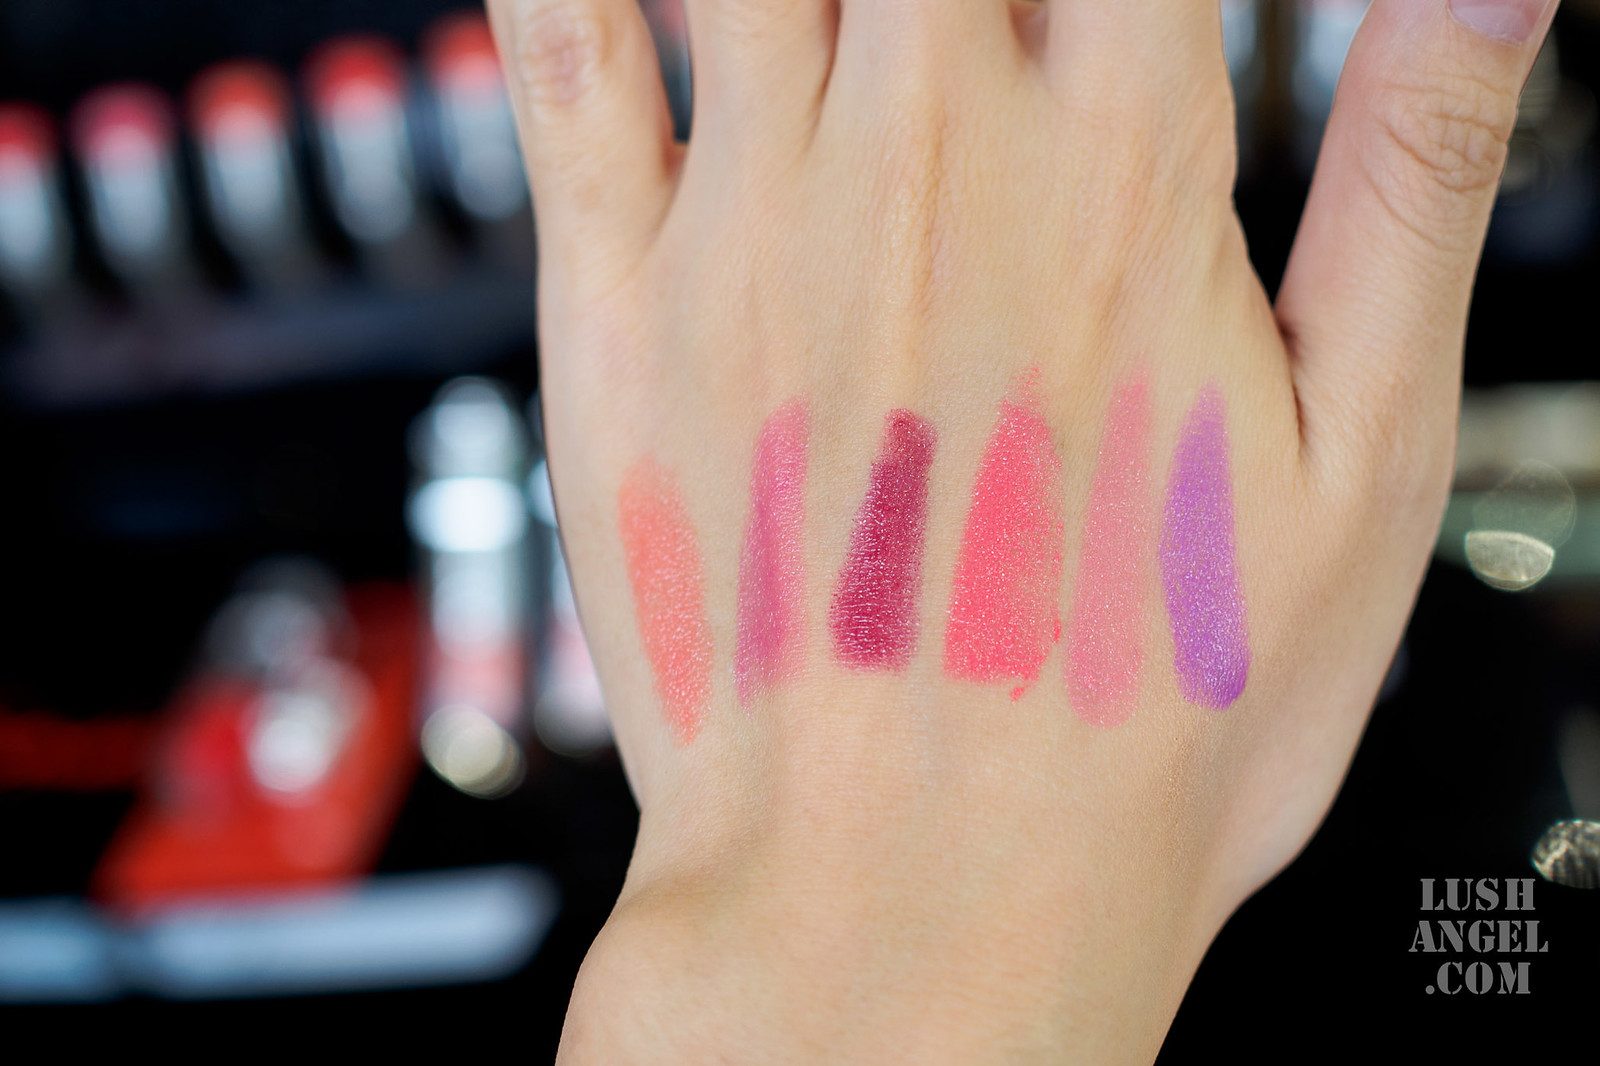 dior-addict-lacquer-stick-swatch